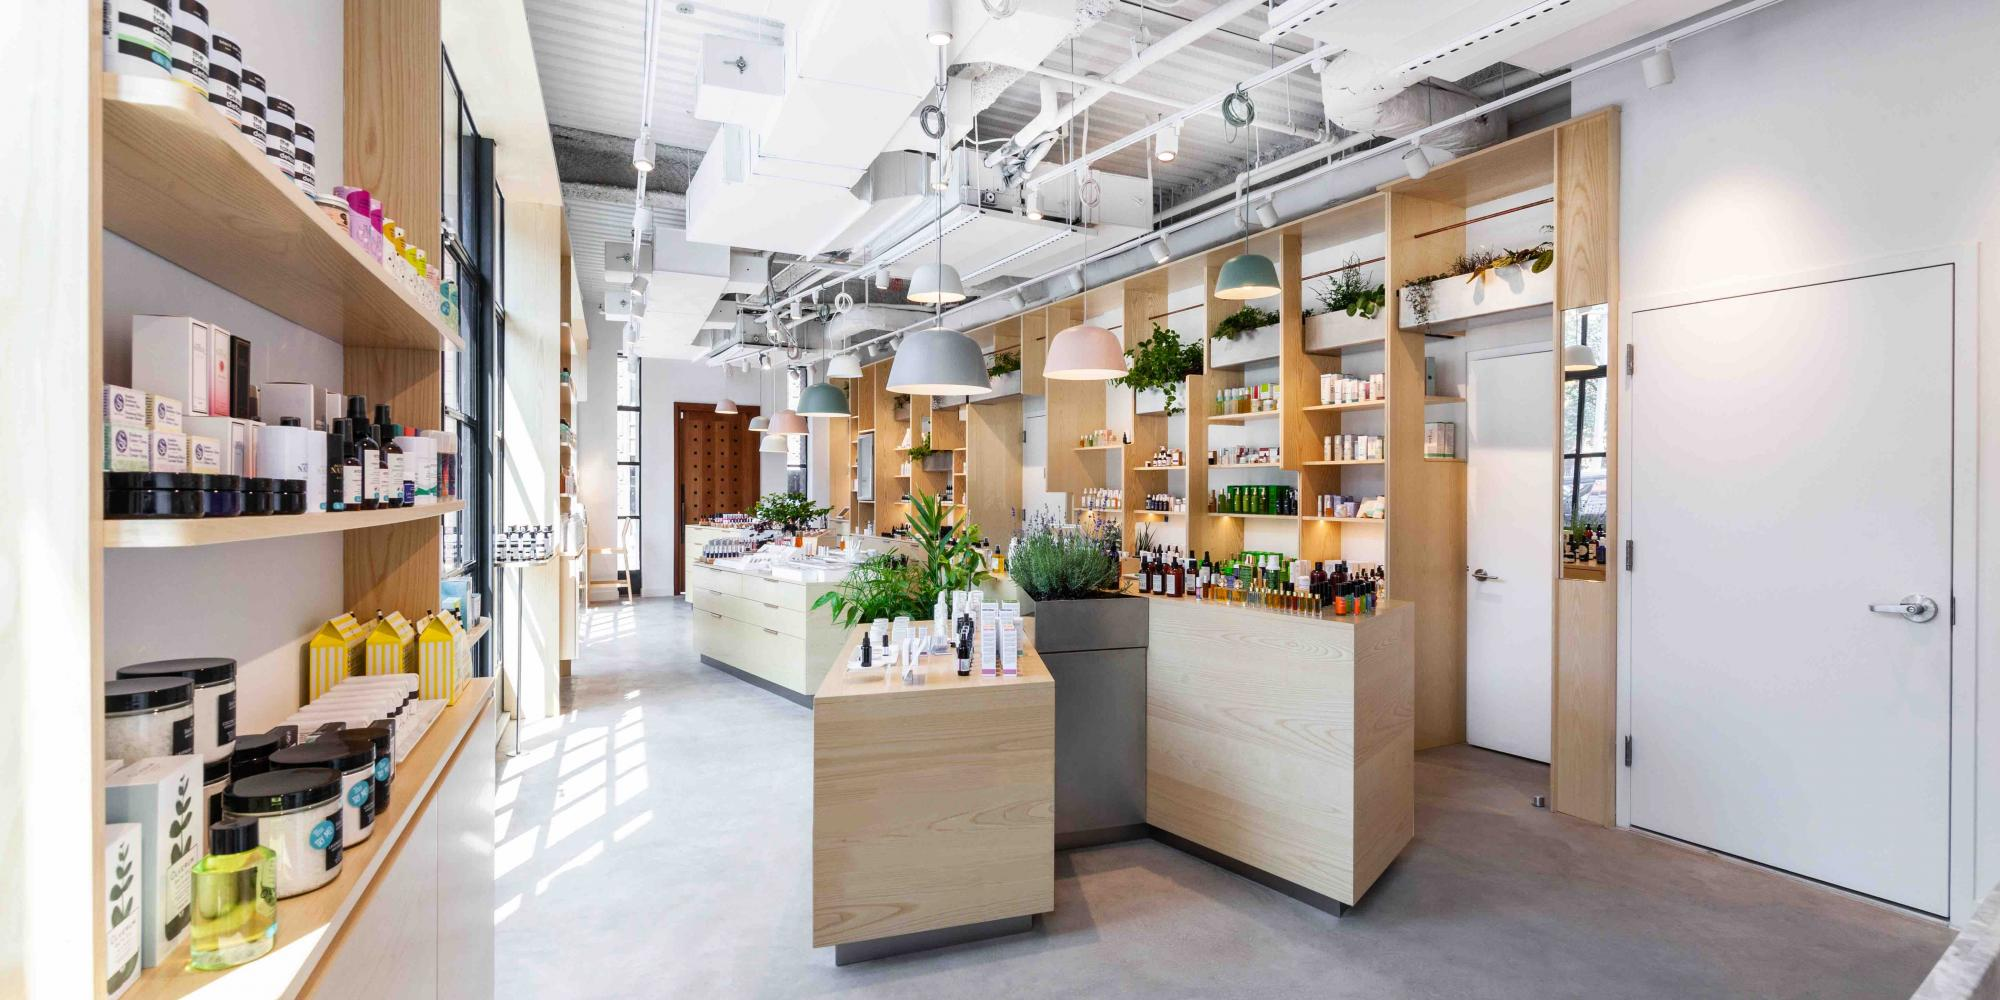 The Detox Market Goes Big In The Big Apple